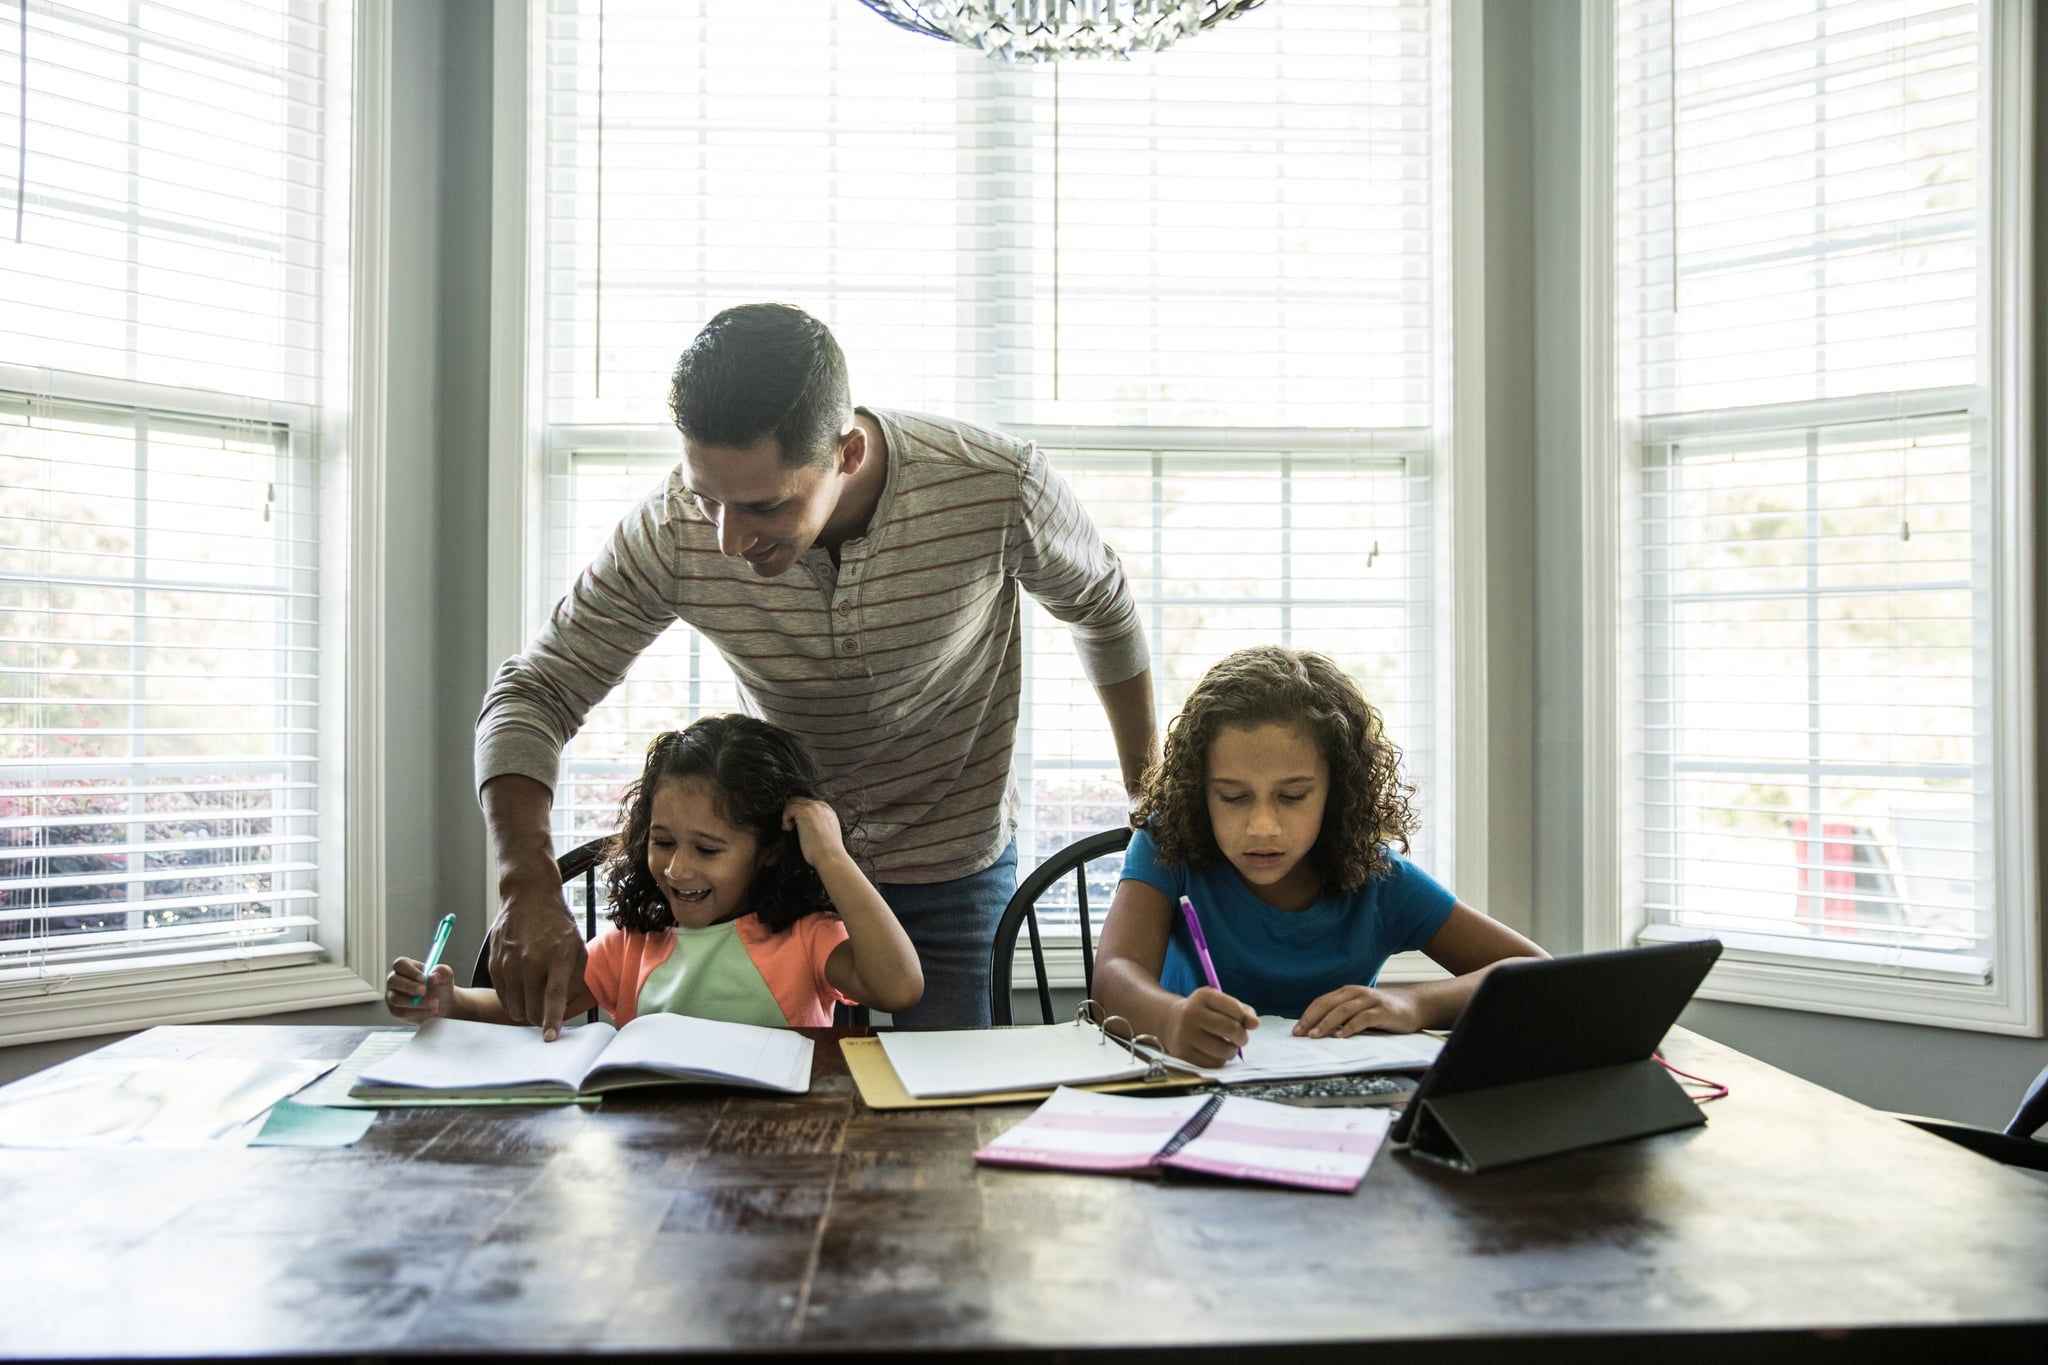 Father helping young girls with schoolwork at kitchen table